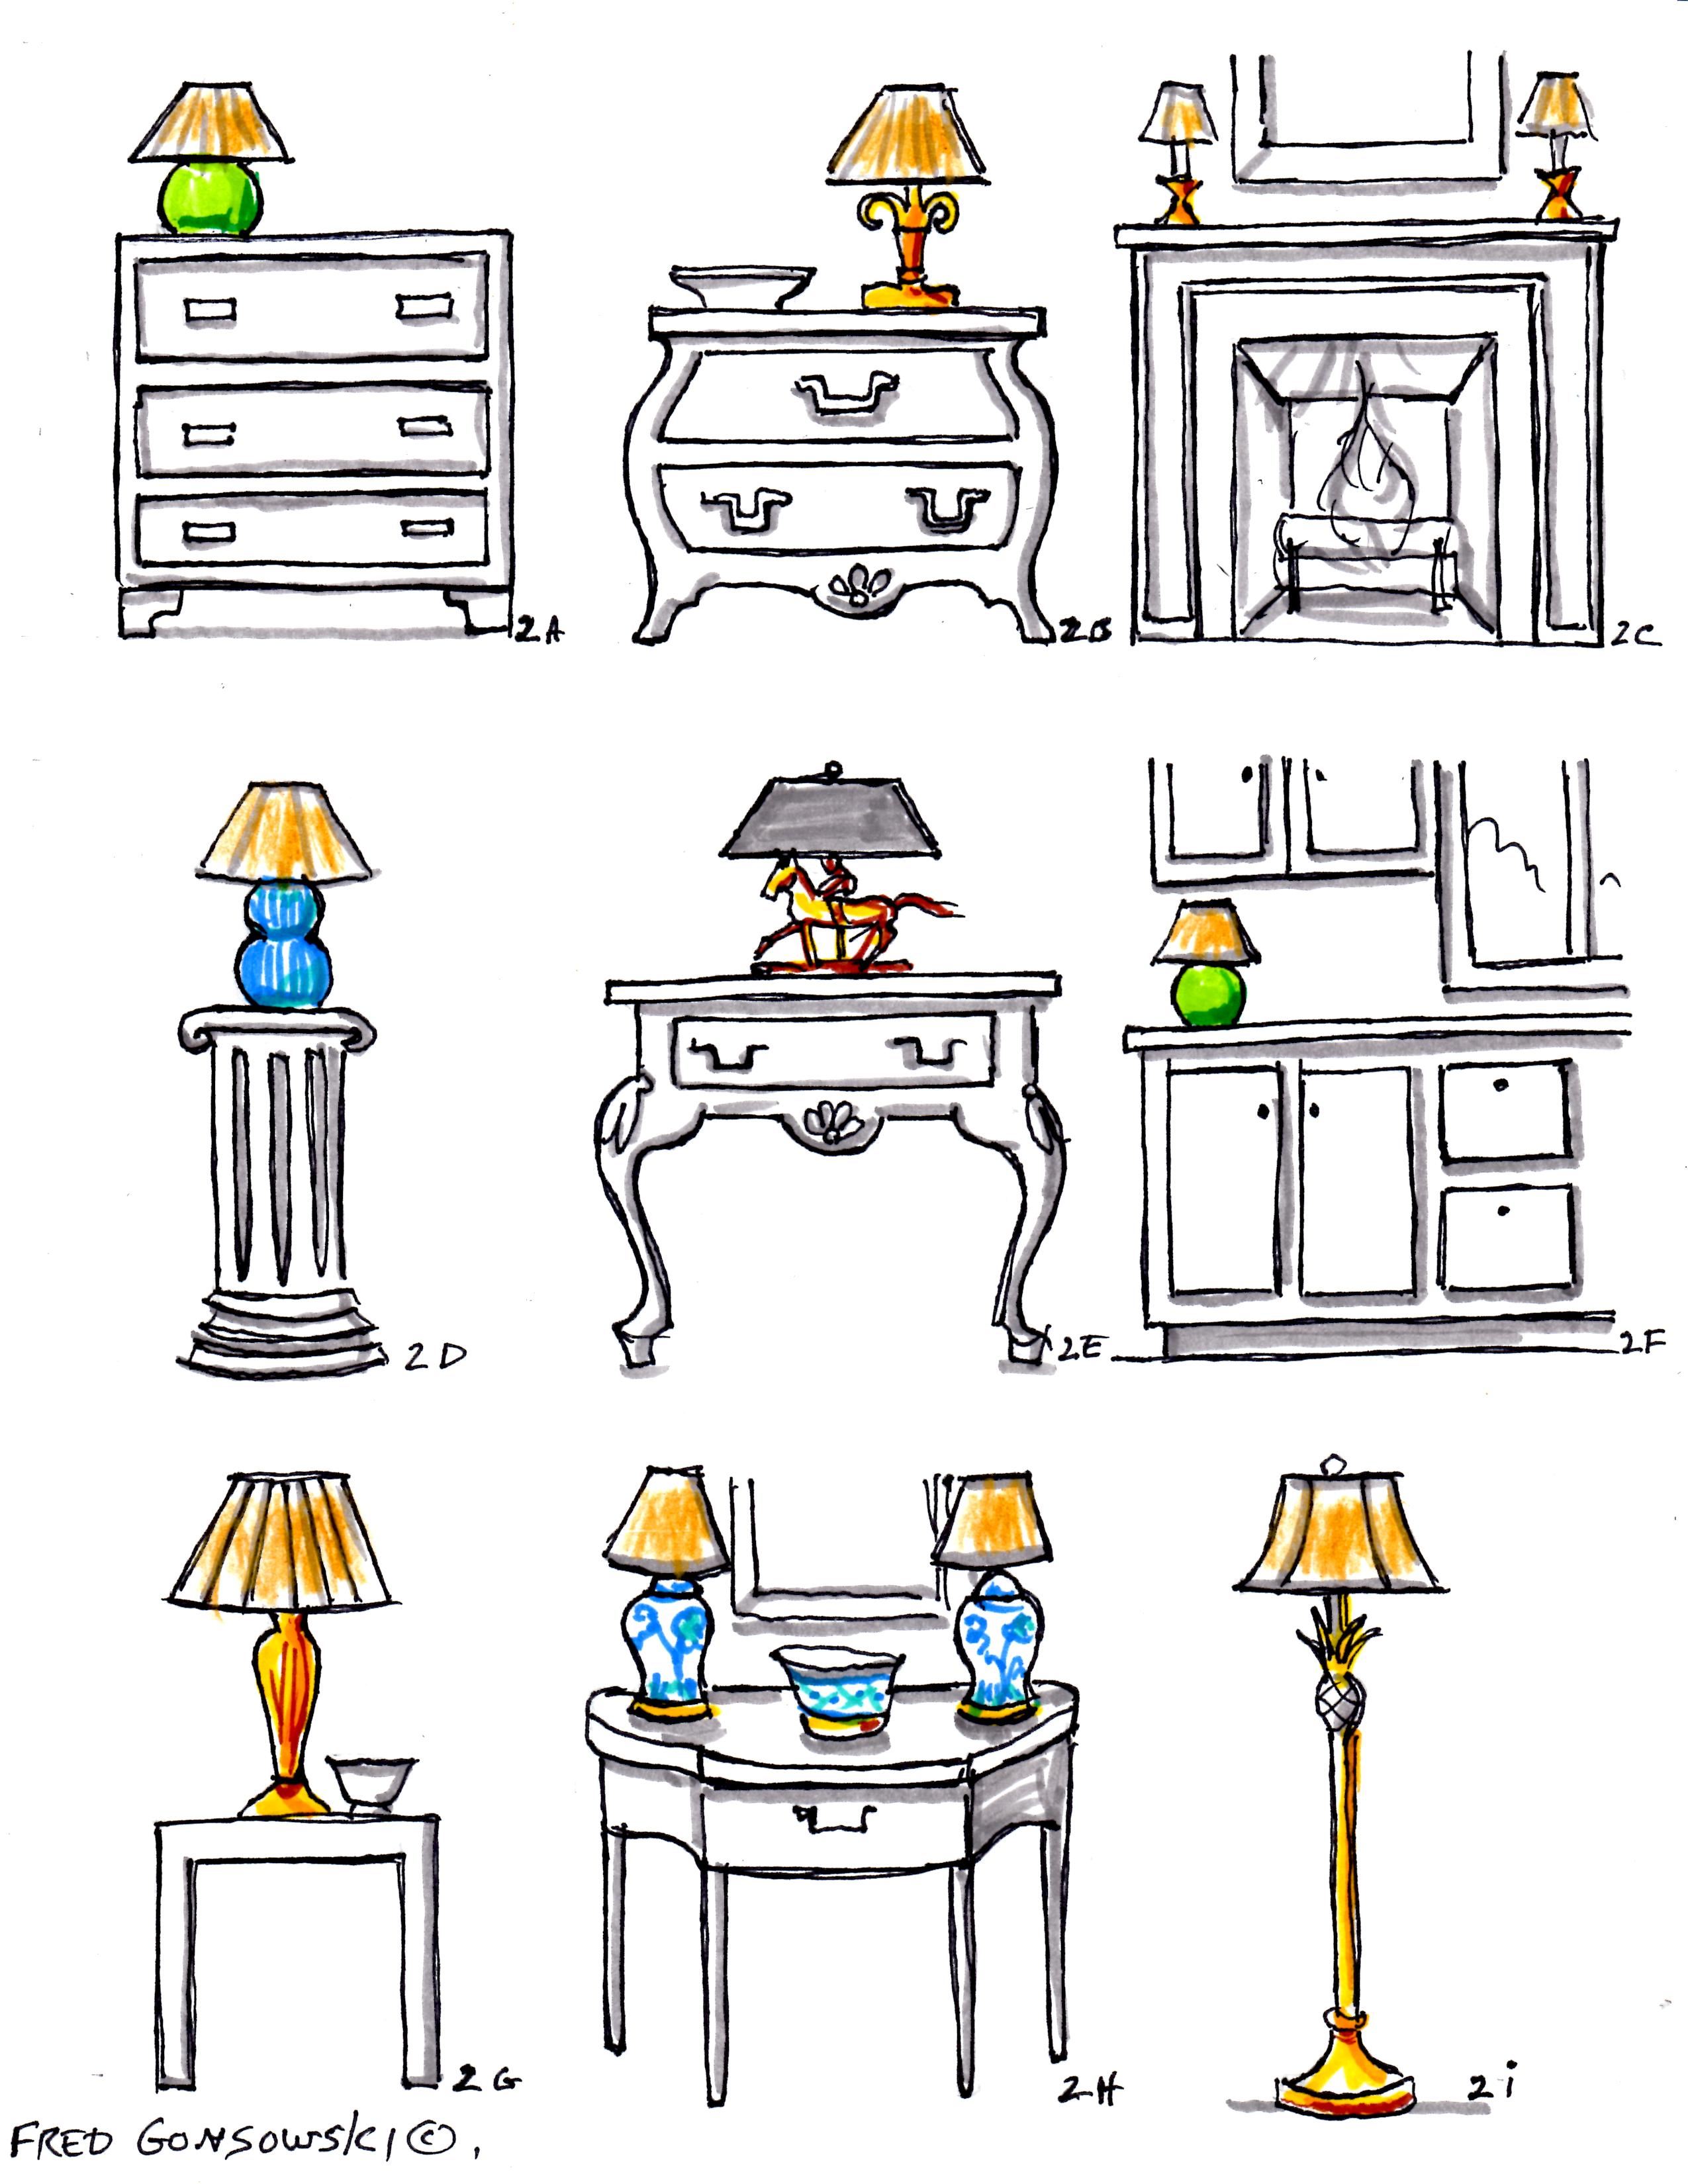 Interior Decorating With Accent Lamps Fred Gonsowski